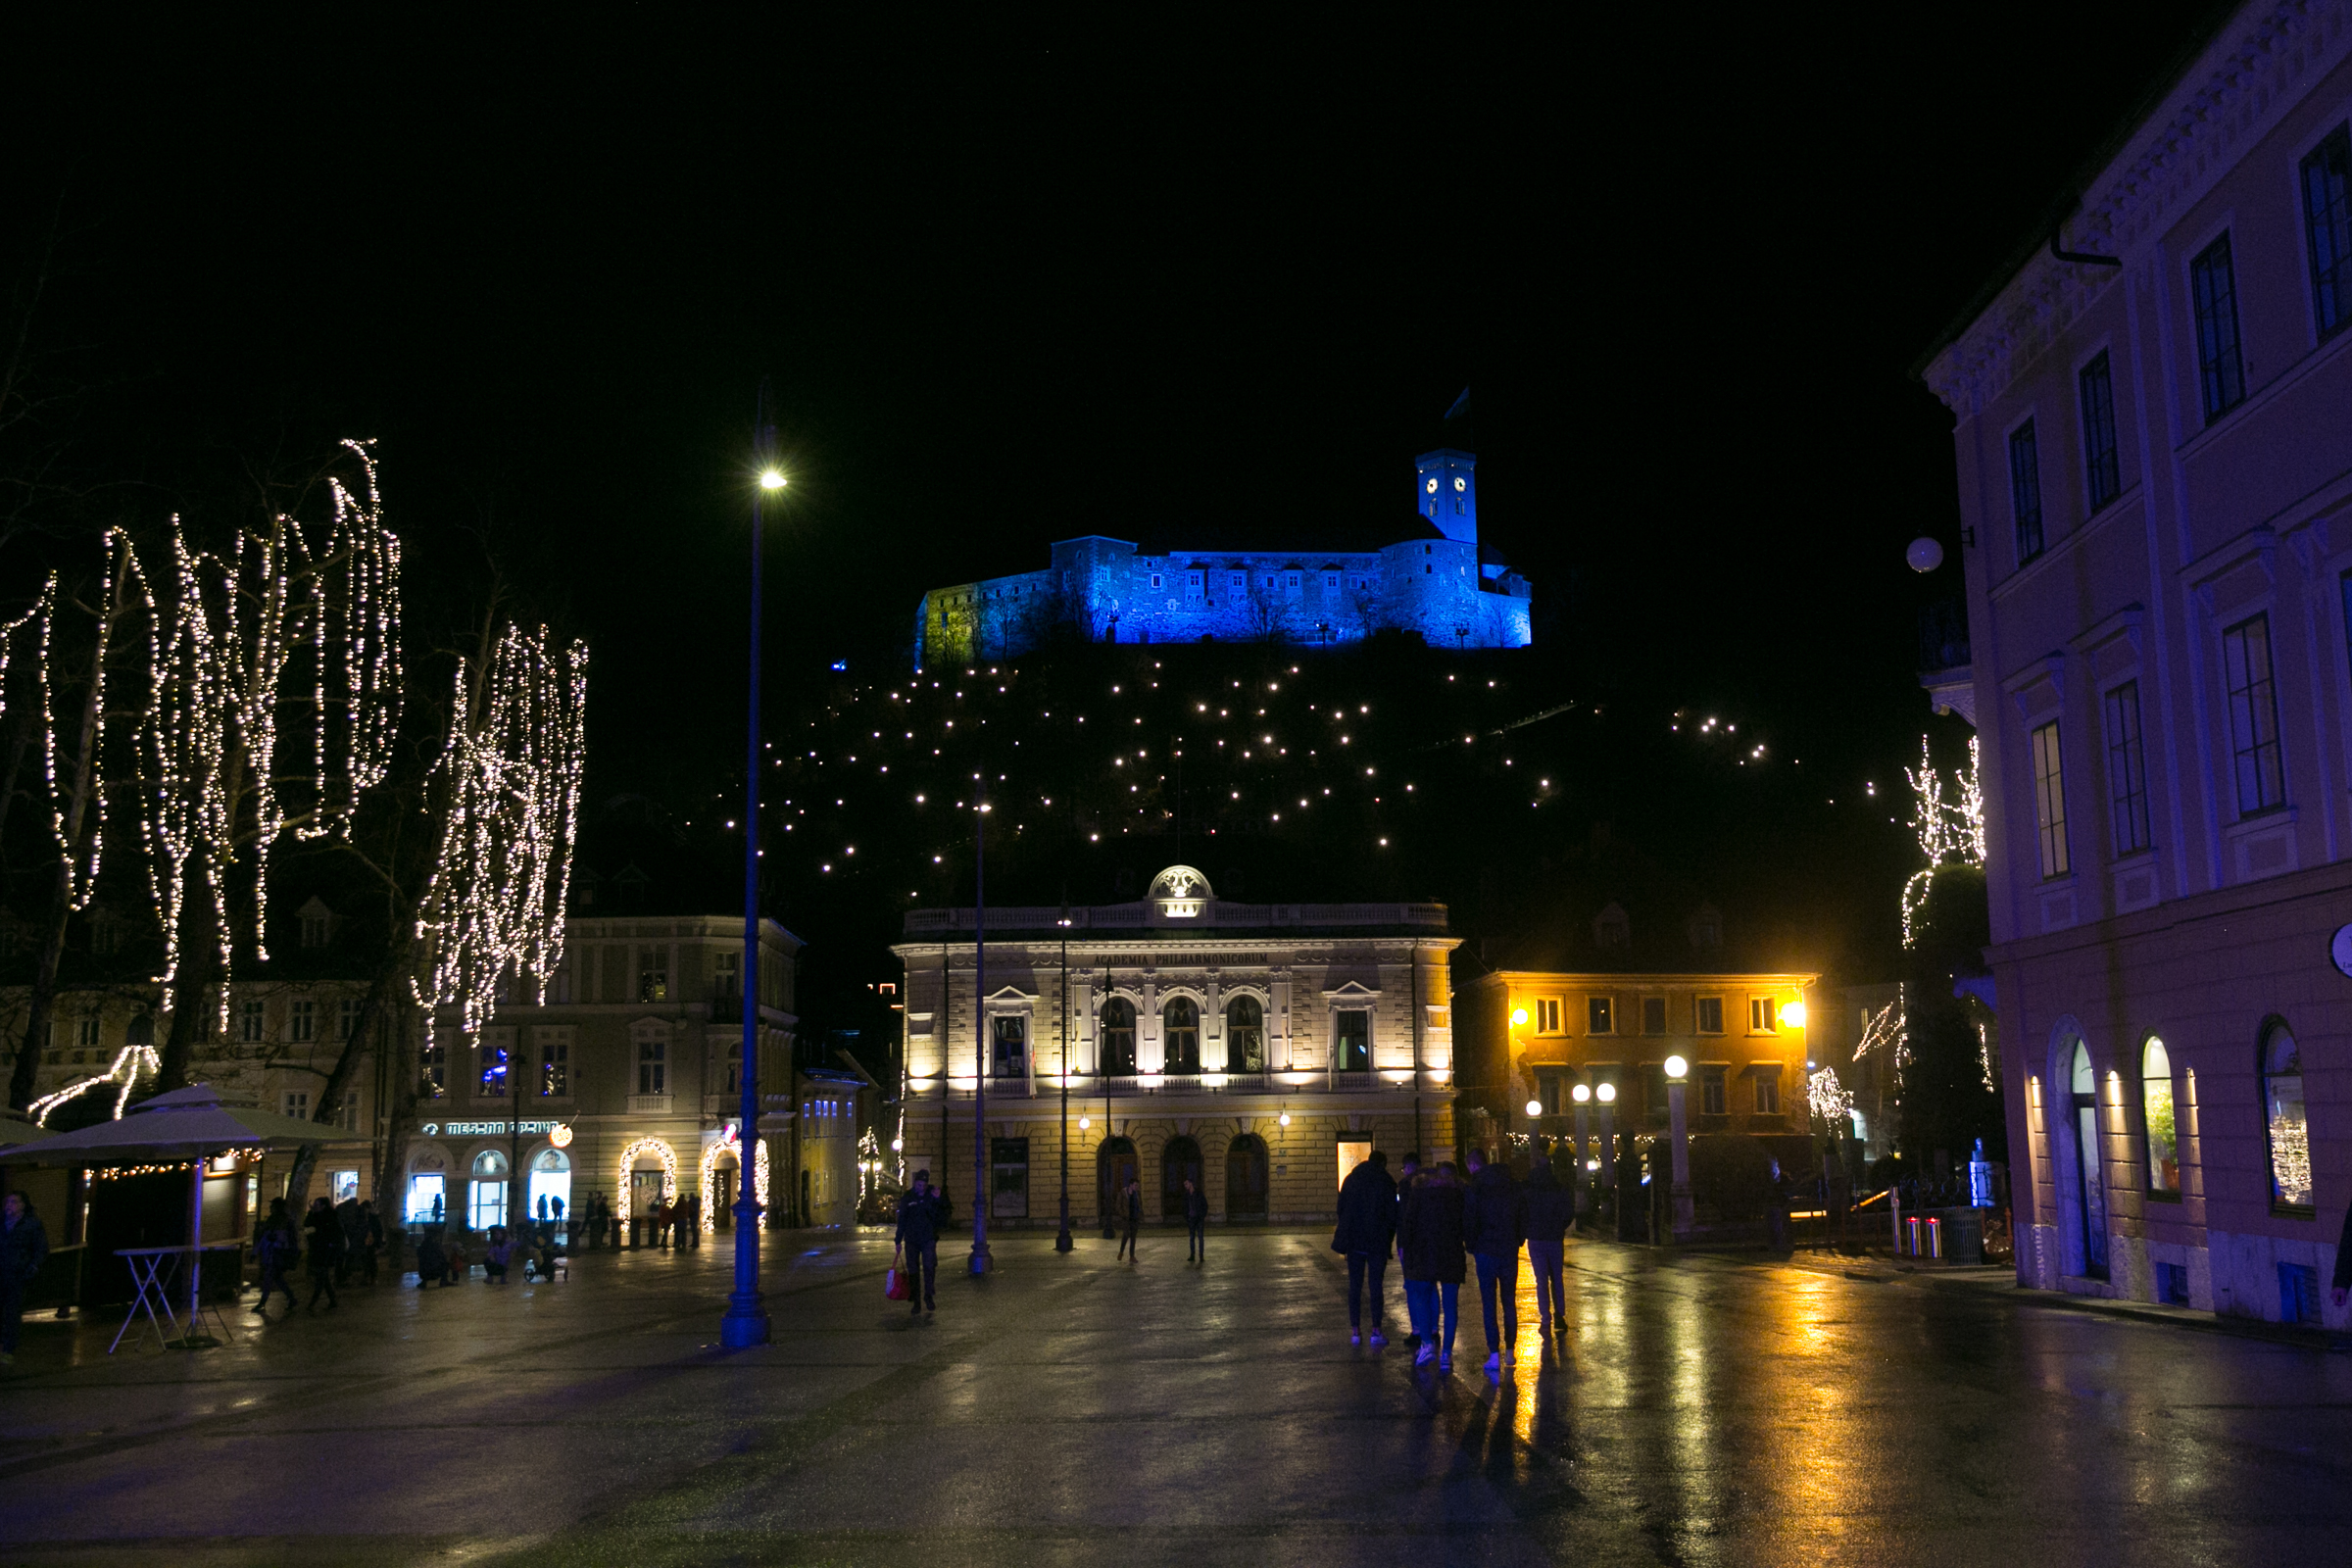 new-year-in-ljubljana-slovenia-europe-eu-slo-minas-planet-jasmina-haskovic1.jpg